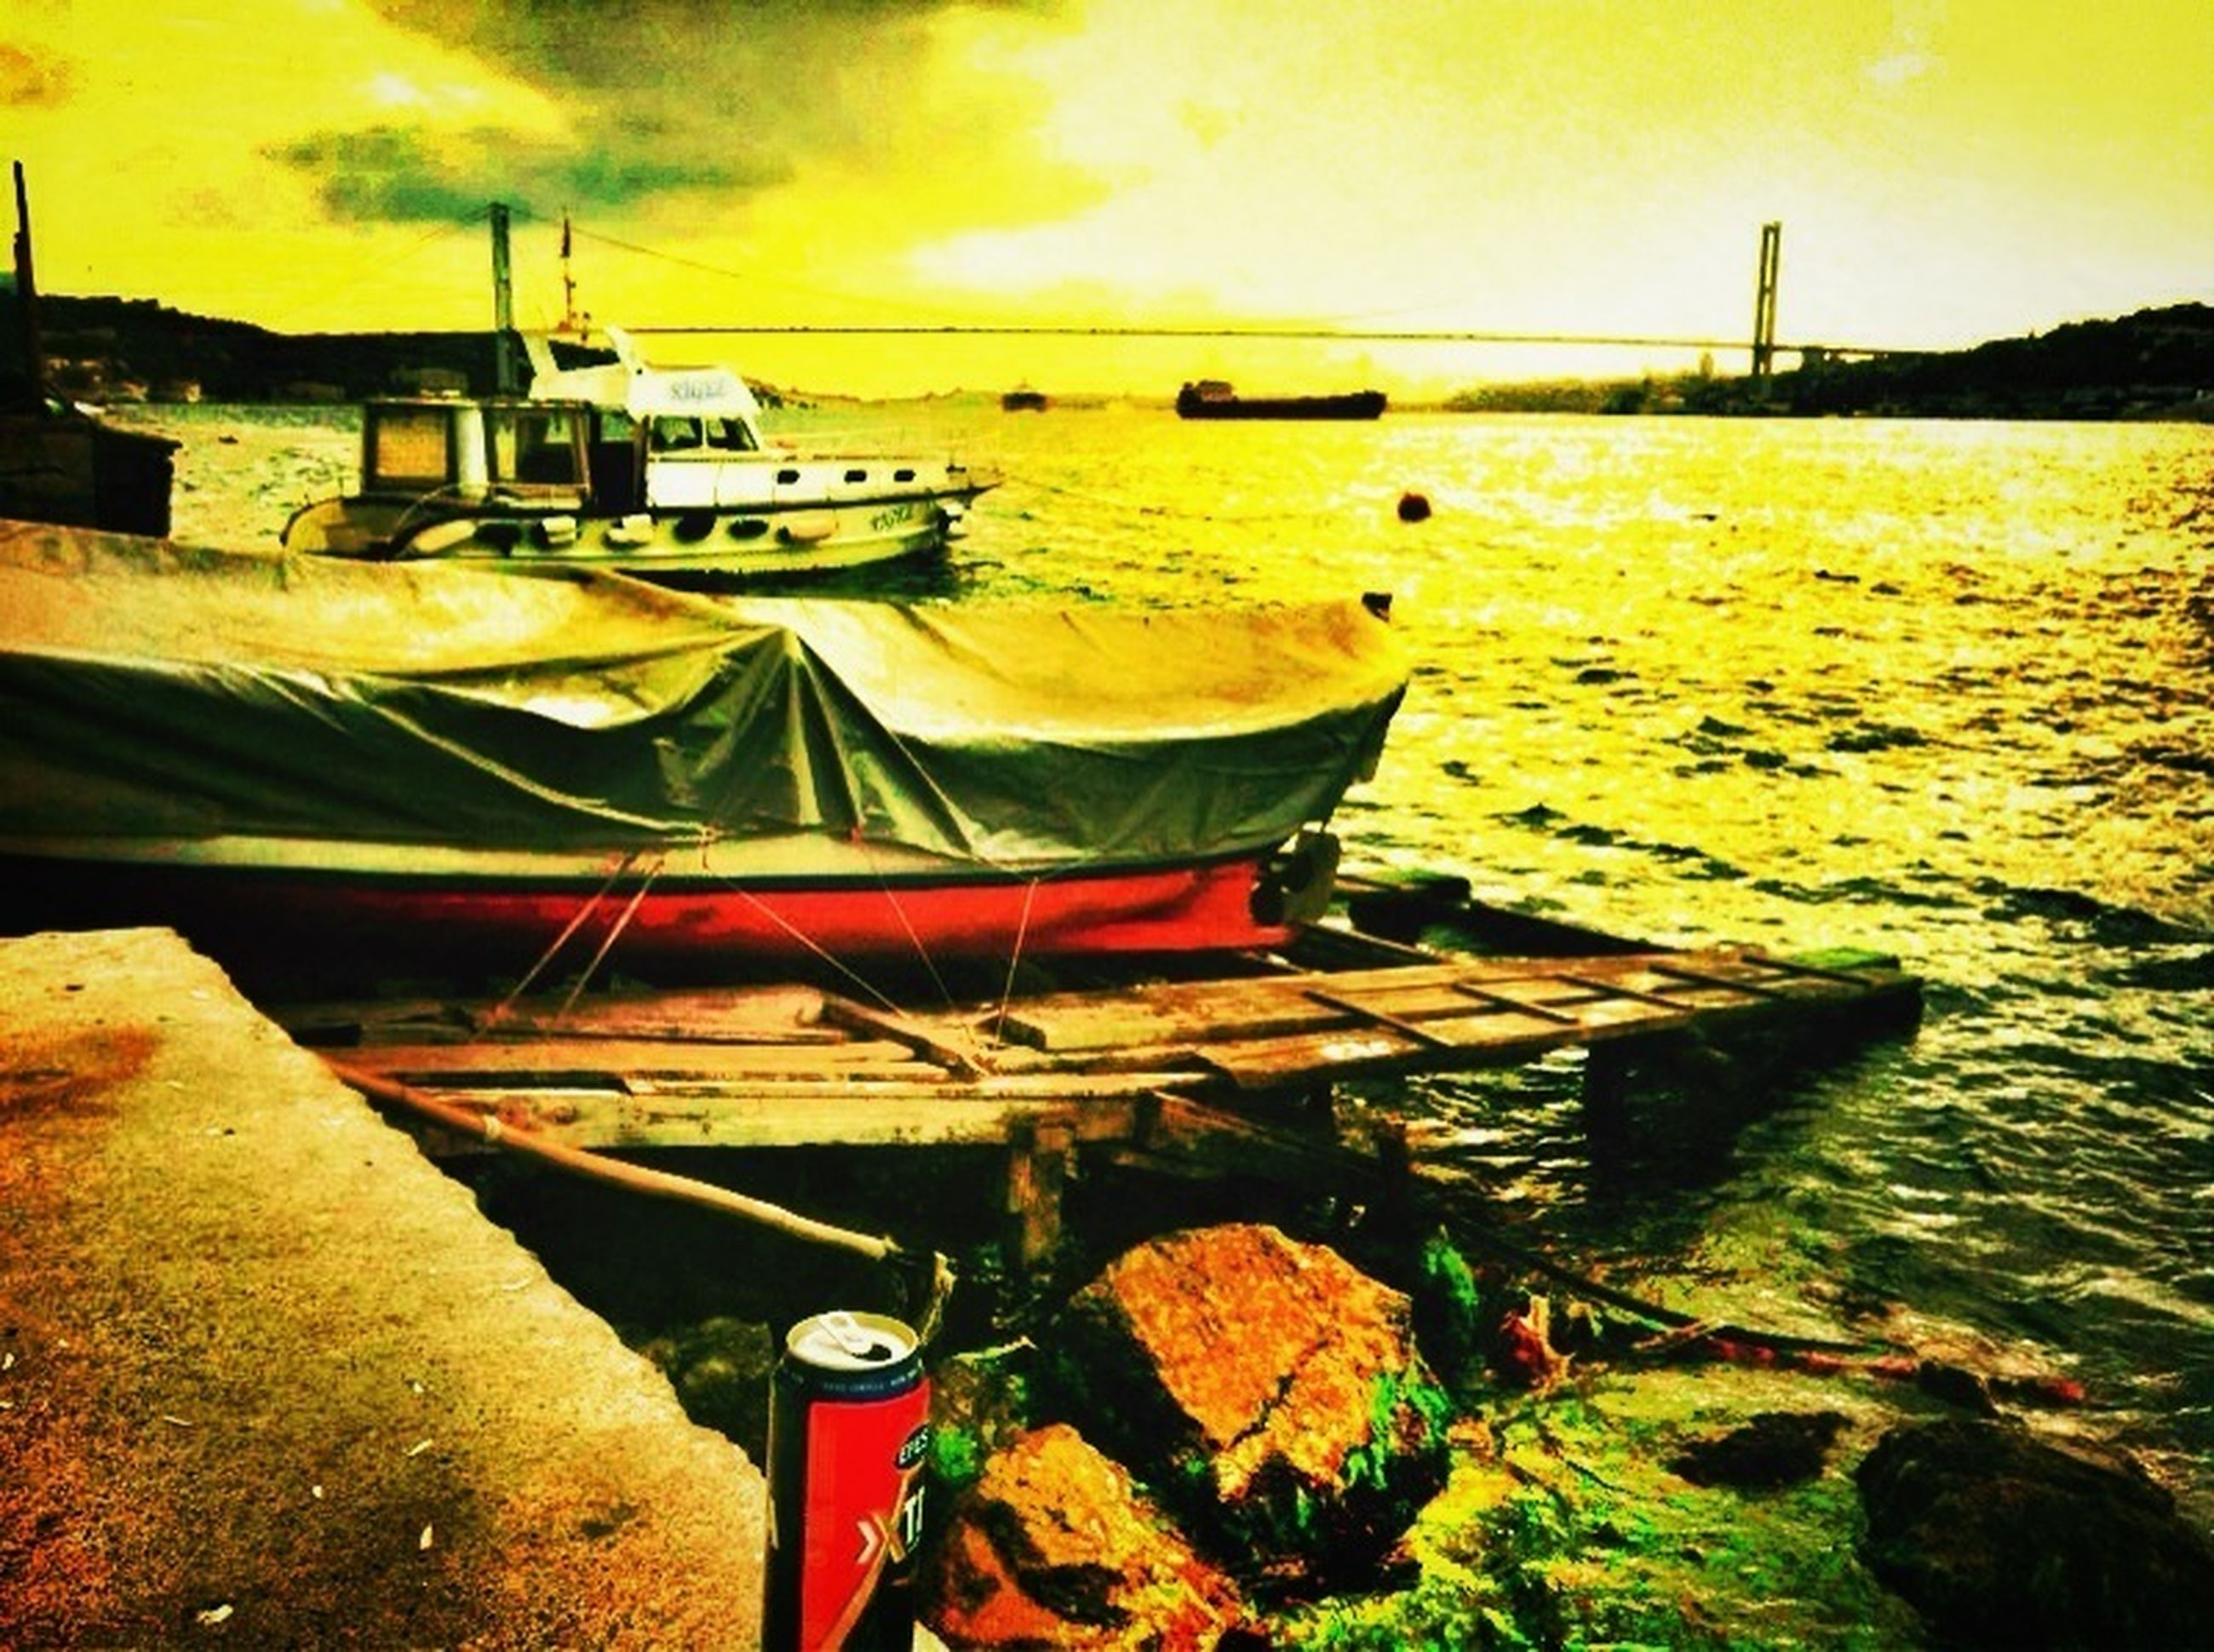 sunset, water, transportation, sky, nautical vessel, orange color, mode of transport, cloud - sky, sea, boat, moored, river, built structure, nature, beauty in nature, tranquility, yellow, architecture, scenics, harbor